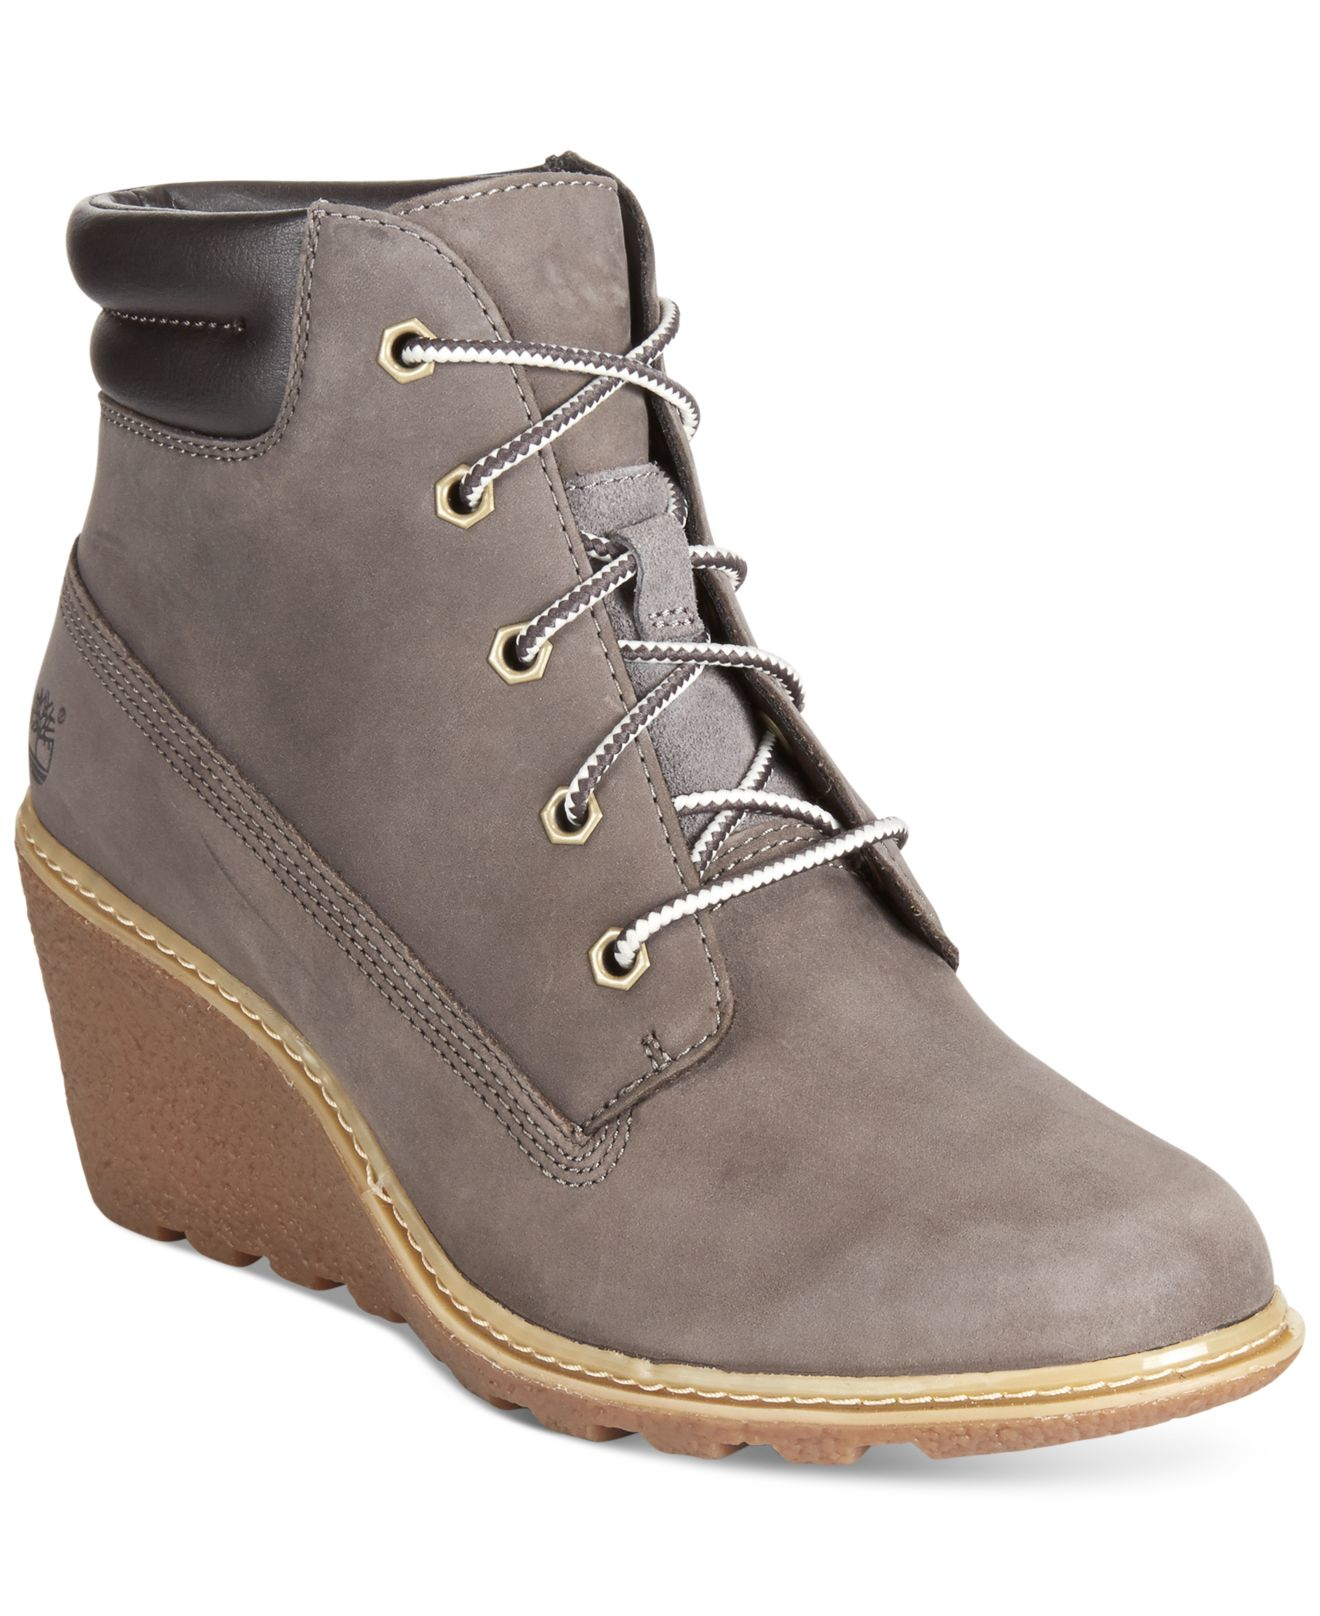 amston women Free shipping and returns on timberland shoes for women at nordstromcom shop for boots, sandals, sneakers and more check out our entire collection.